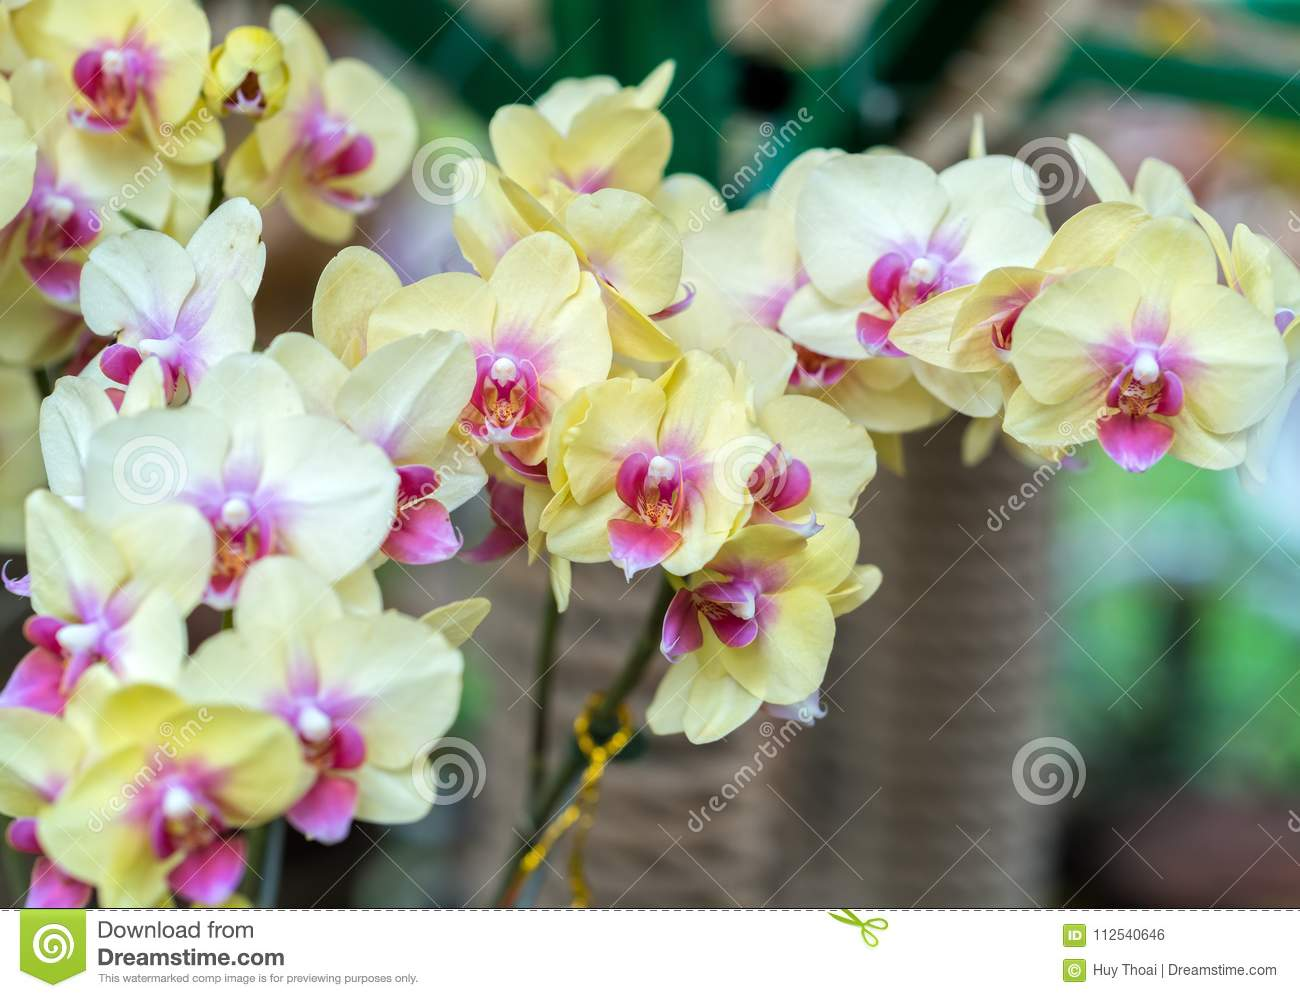 Phalaenopsis flowers bloom in spring adorn the beauty of nature phalaenopsis flowers bloom in spring adorn the beauty of nature this is the most beautiful orchid decorated in the house to help people close to nature izmirmasajfo